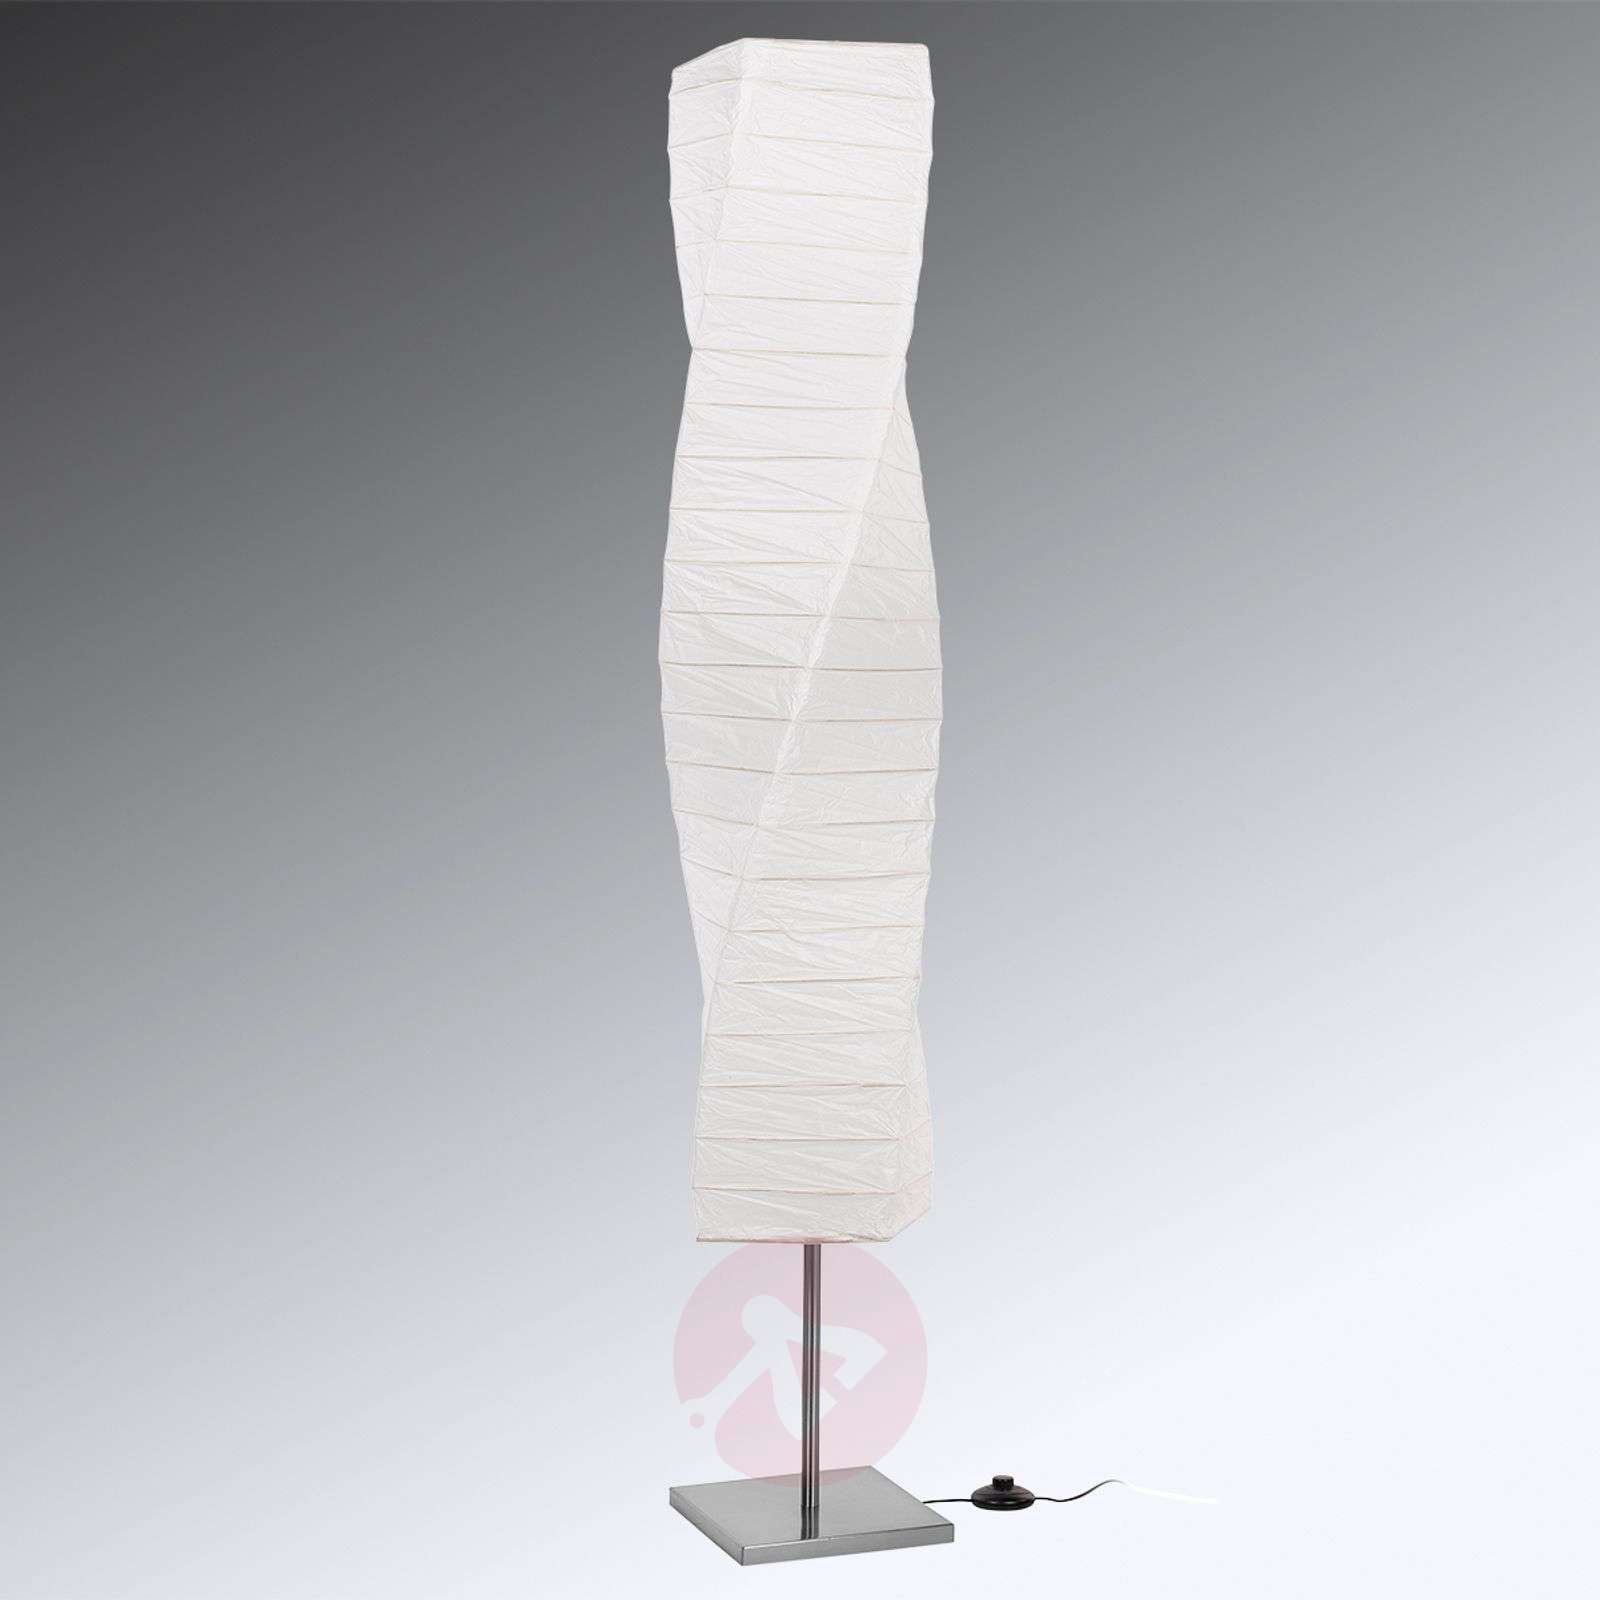 Spiral-shaped paper floor lamp Twister-8567077-013